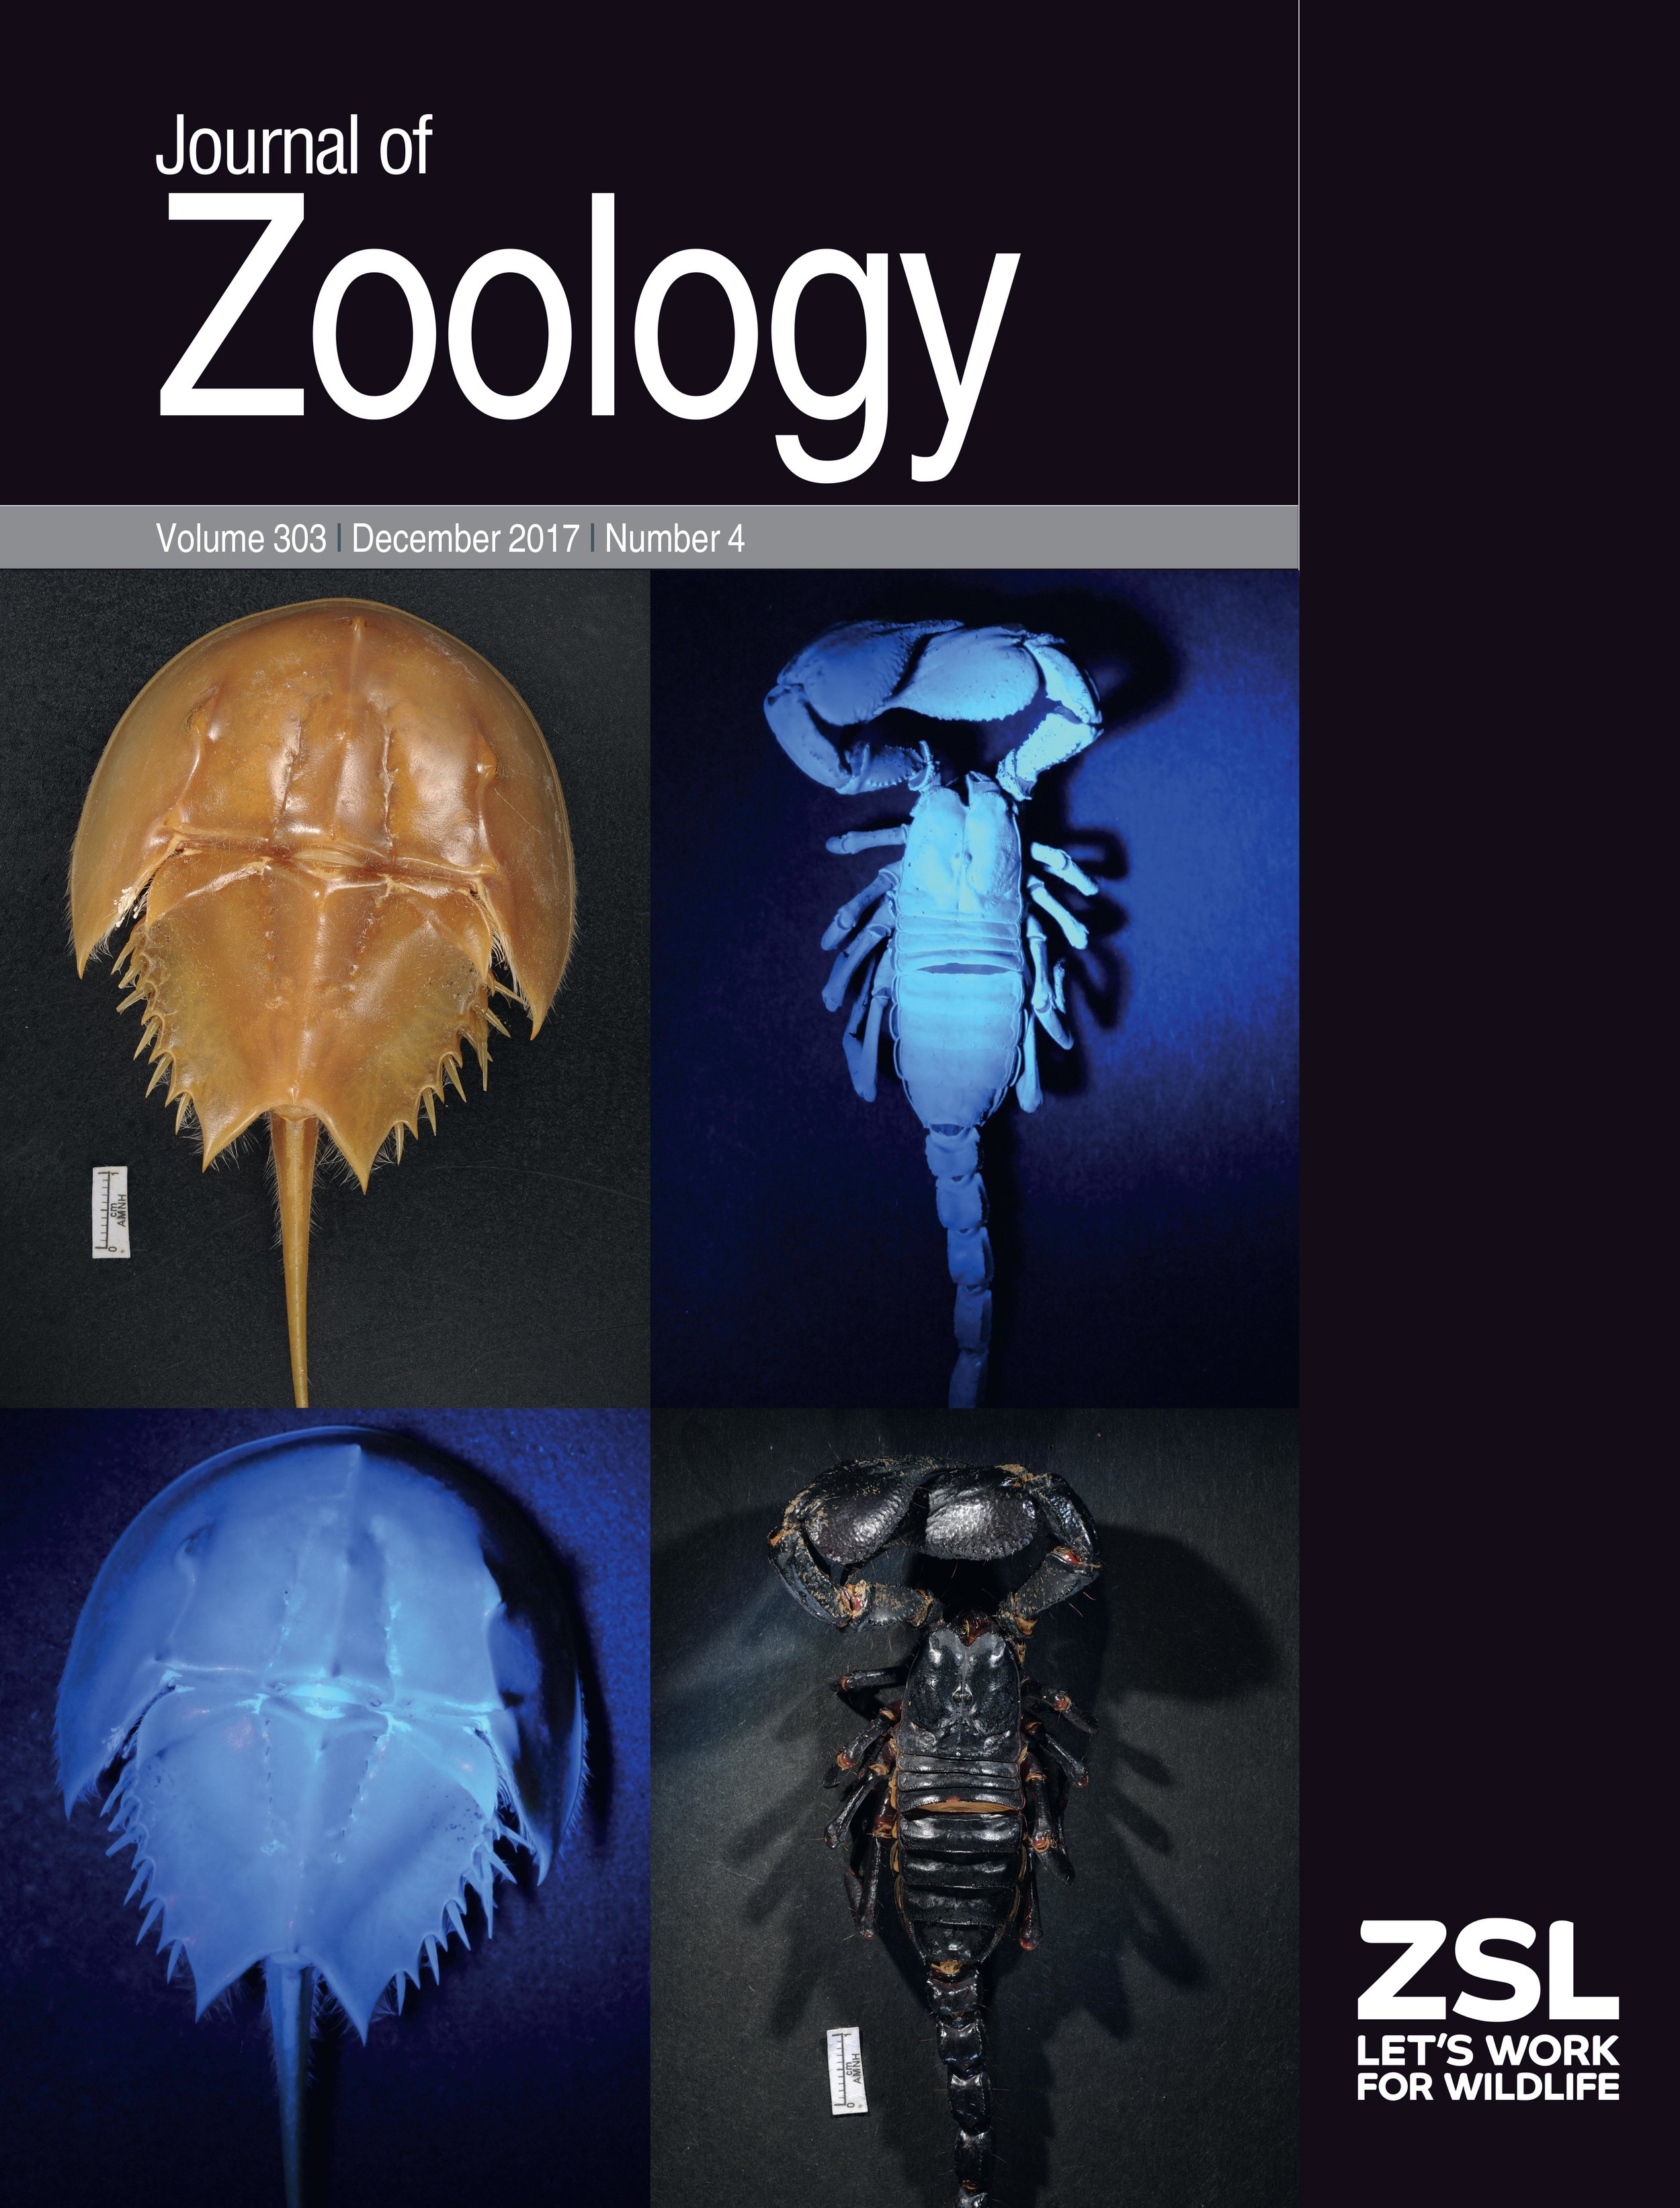 Arachnid cuticle fluorescence on the cover of  Journal of Zoology